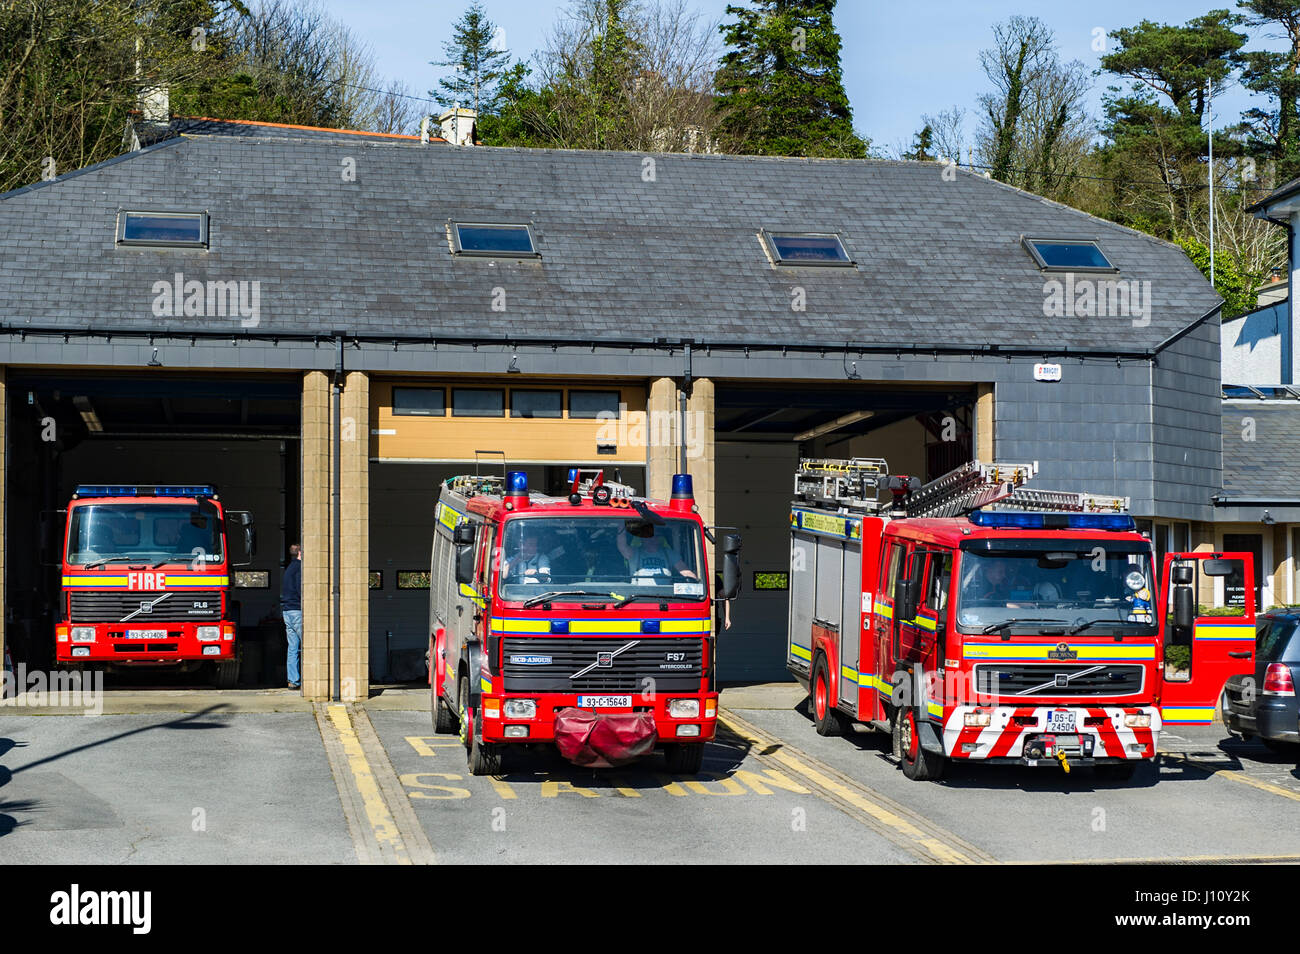 Fire engines stand outside Bantry Fire Station just after the alarm has sounded for firefighters to attend a fire - Stock Image